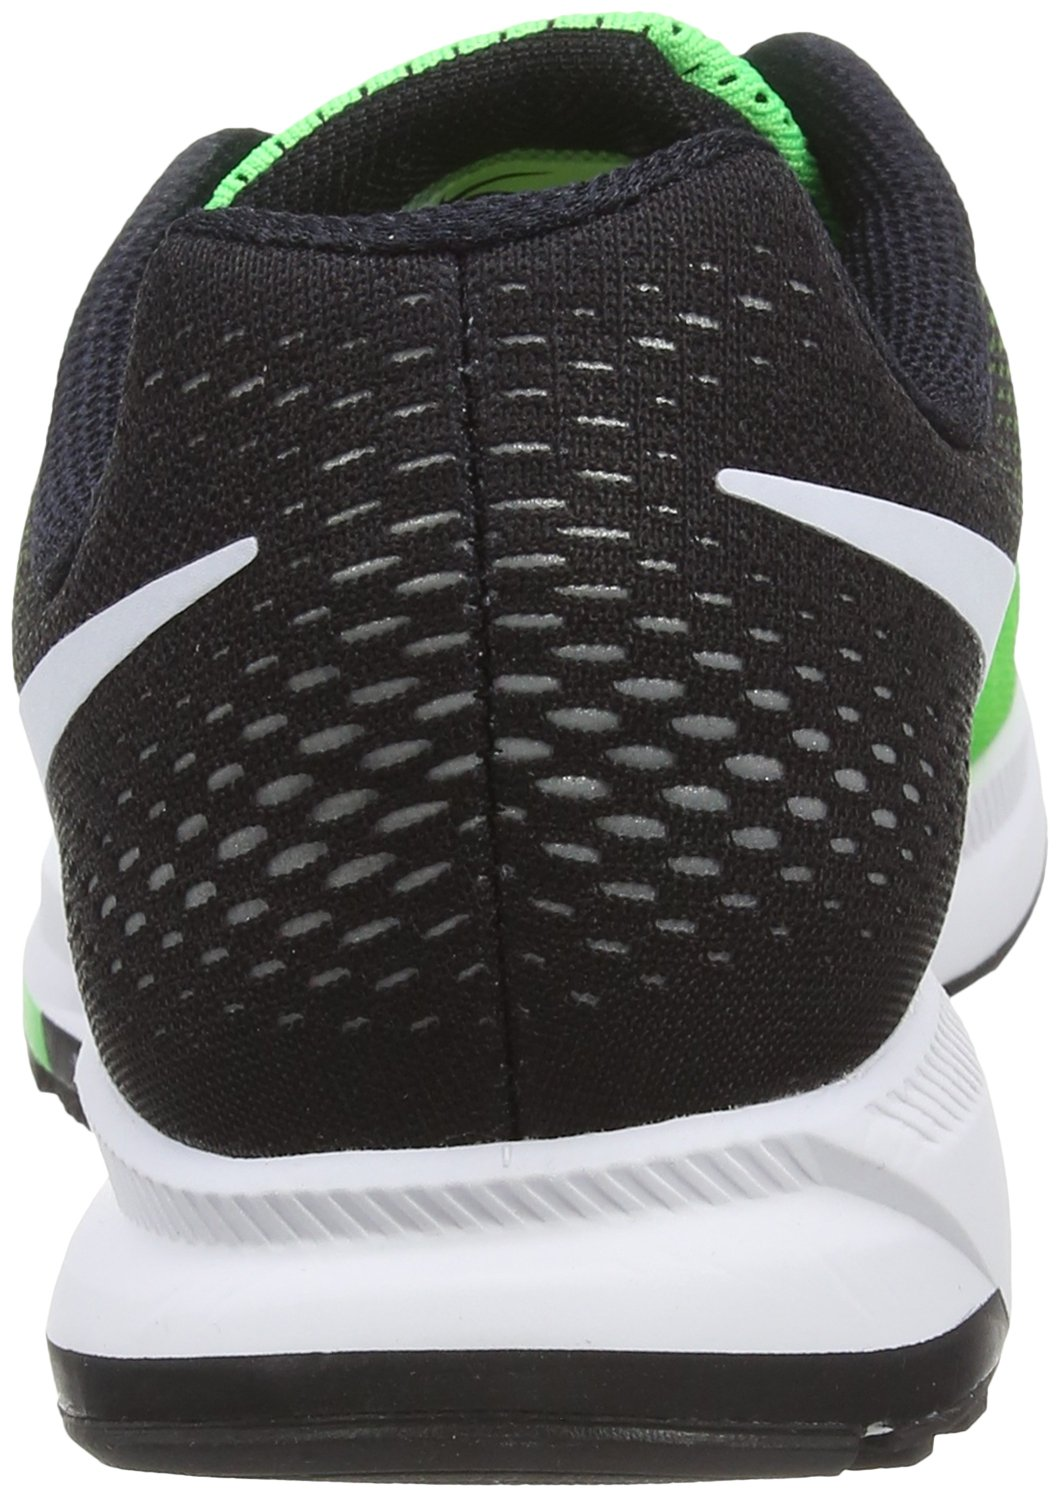 Nike Men's Air Zoom Pegasus 33 B01IP5XCMY 8 D(M) US|Rage Green White Black 301